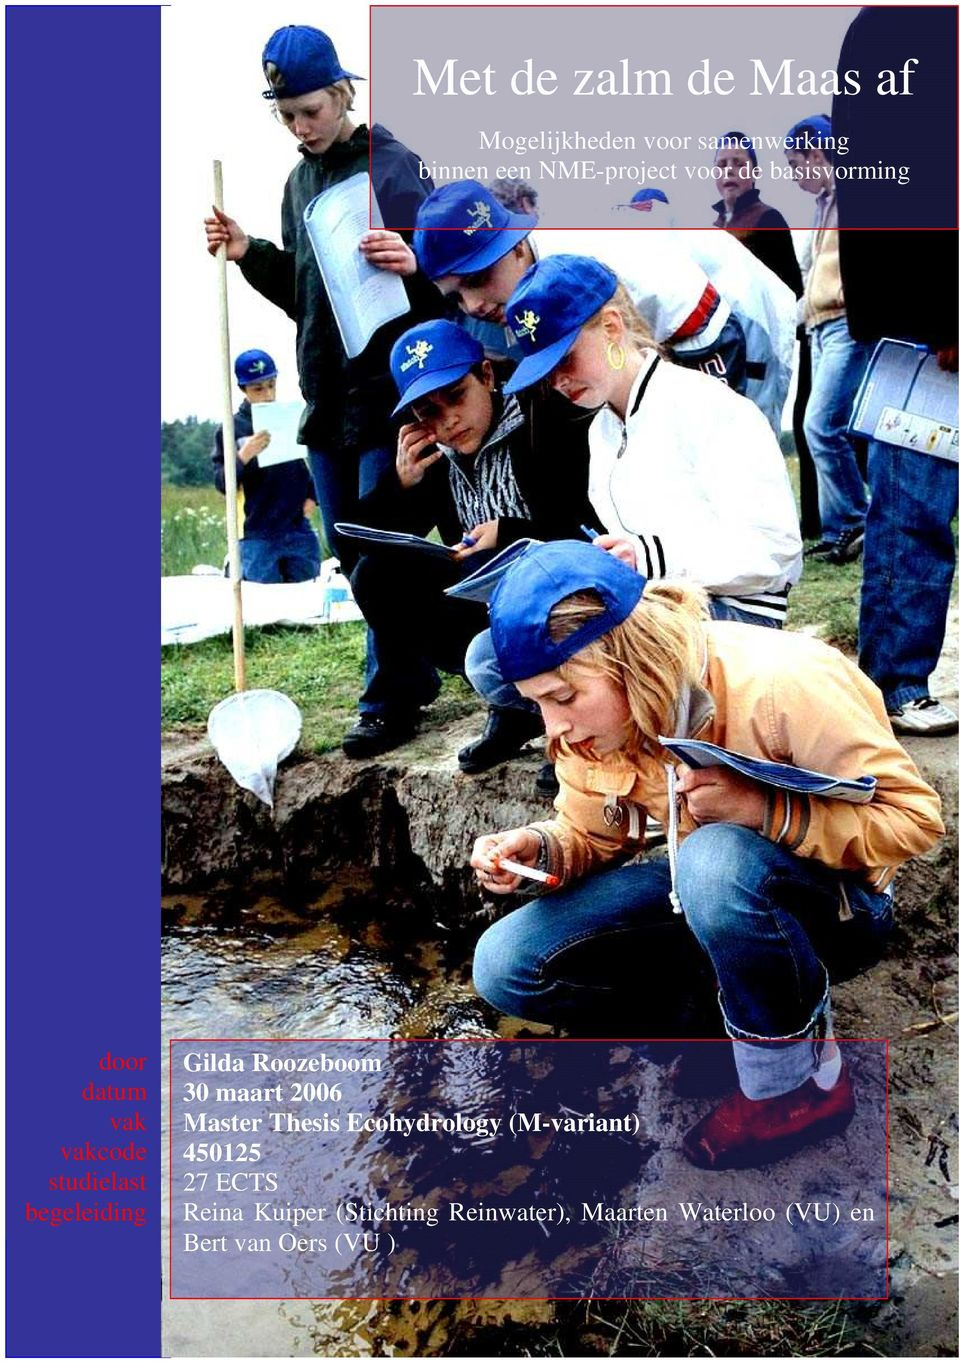 Roozeboom 30 maart 2006 Master Thesis Ecohydrology (M-variant) 450125 27